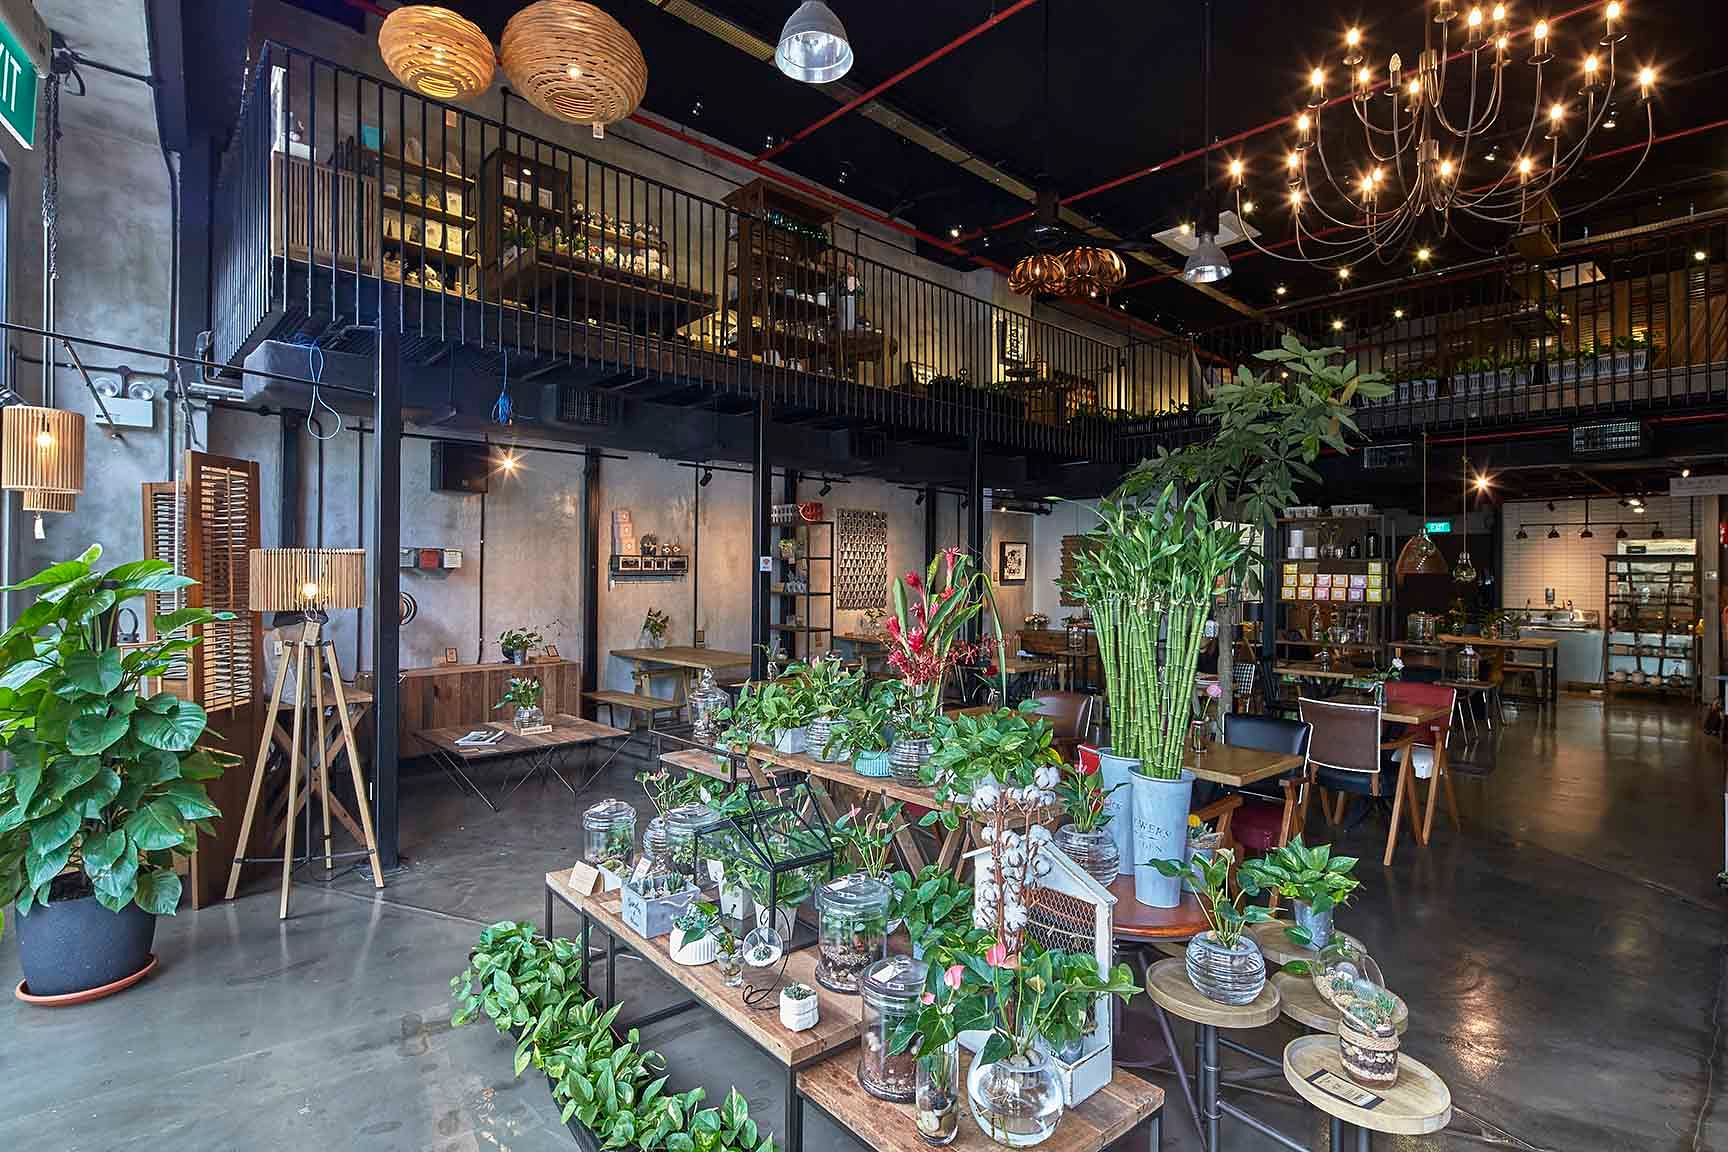 Check out Knots Living a furniture store cafe and flower shop